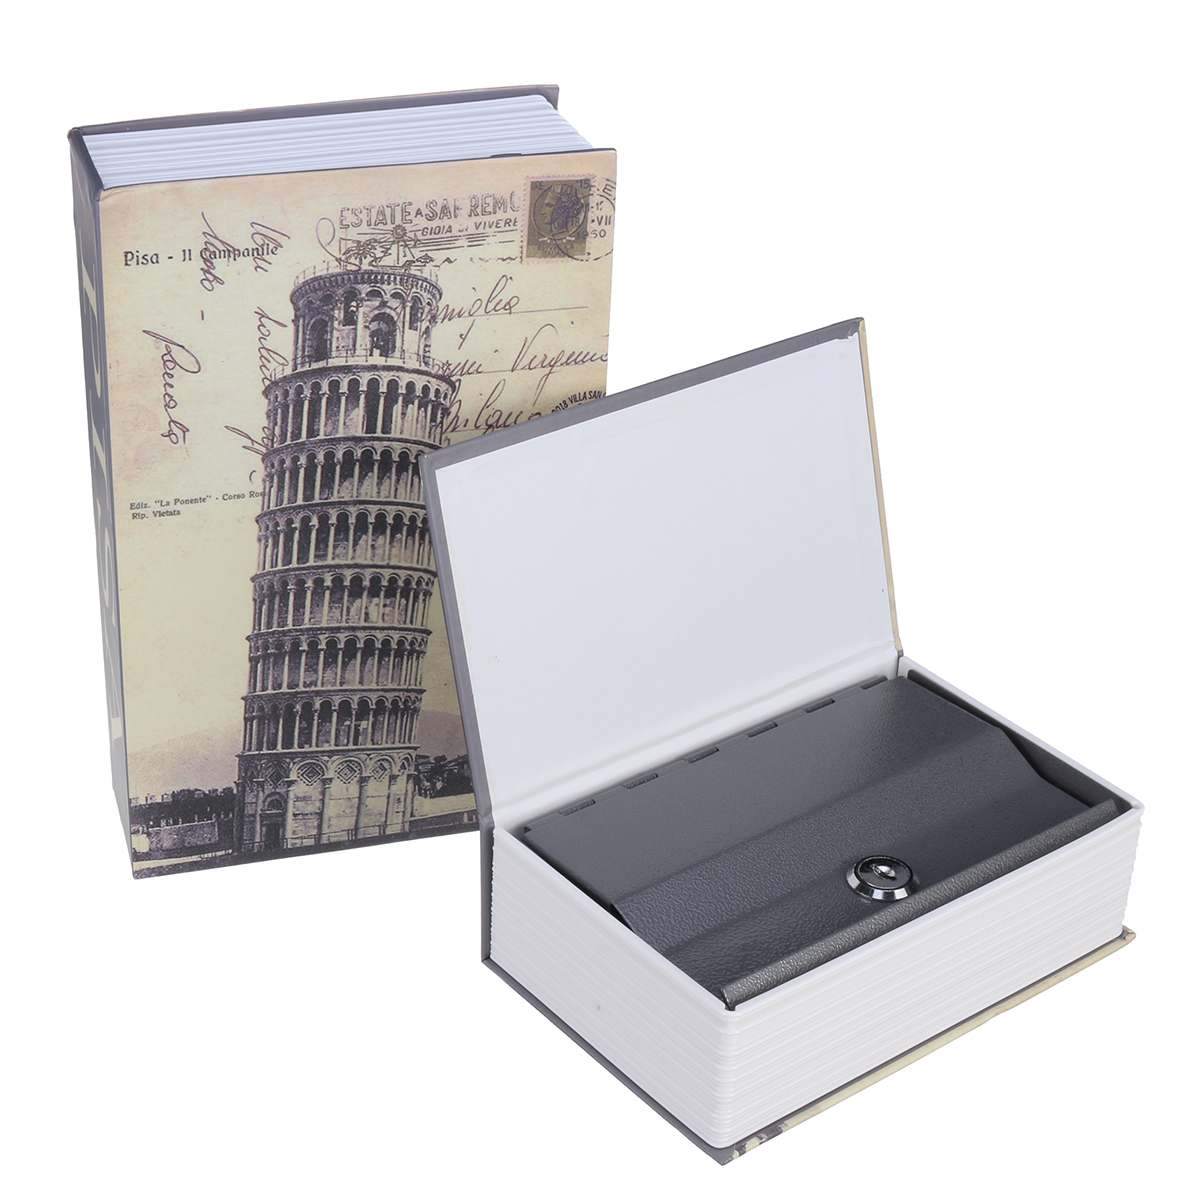 Steel Security Locker Money Secret Security Safe Box Lock Box Book Cash Coin Storage Jewelry Key Locker Storage Container